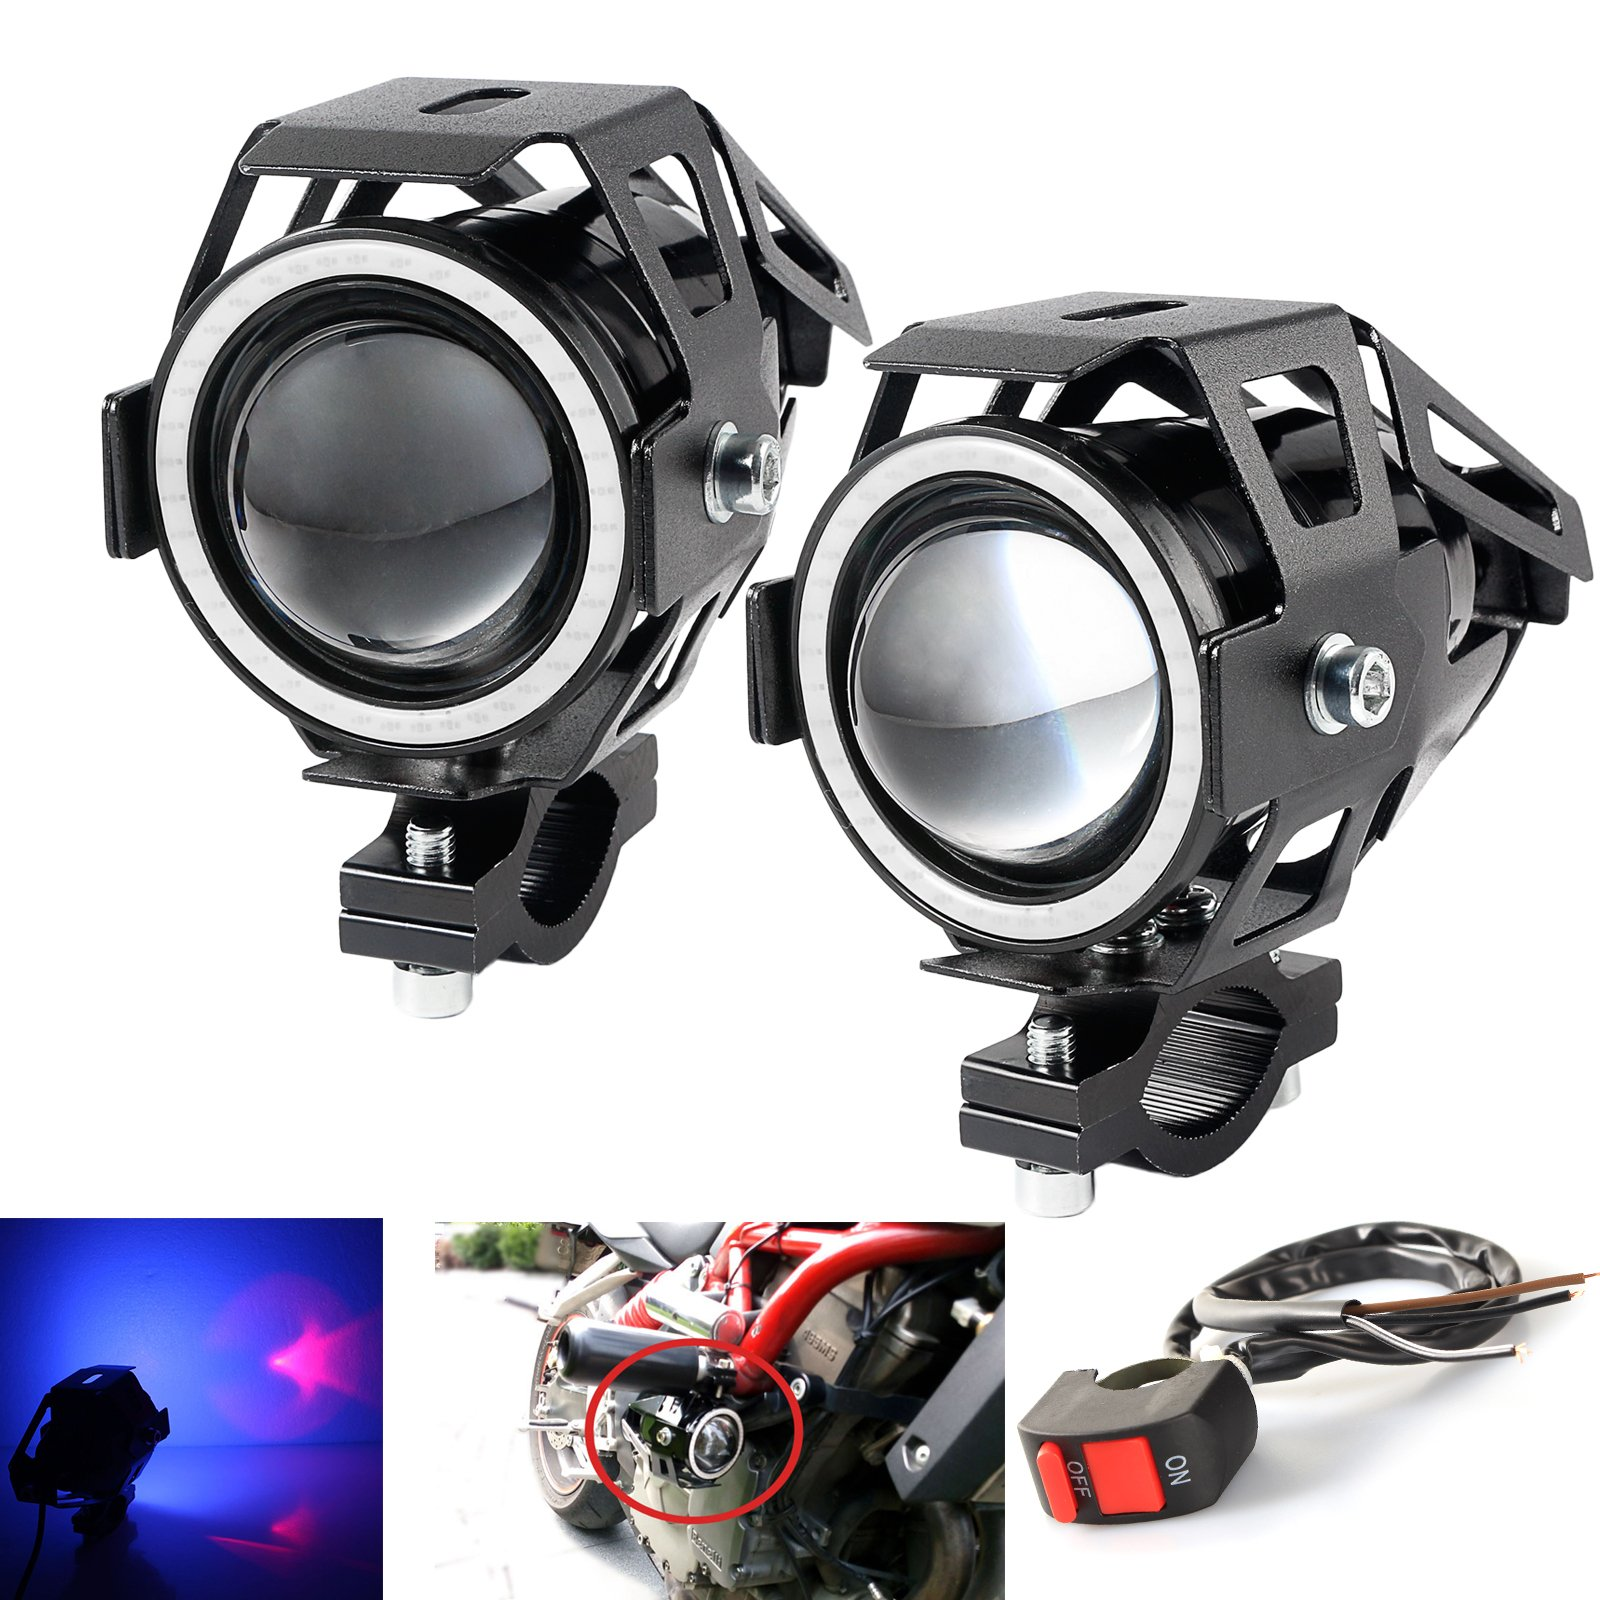 LEDUR Motorcycle Headlight Led U7 DRL Fog Driving Running Light with Angel Eyes Lights Ring Front Spotlight Strobe Flashing Blue Light and Switch(2PCS,Blue Halo) by LEDUR